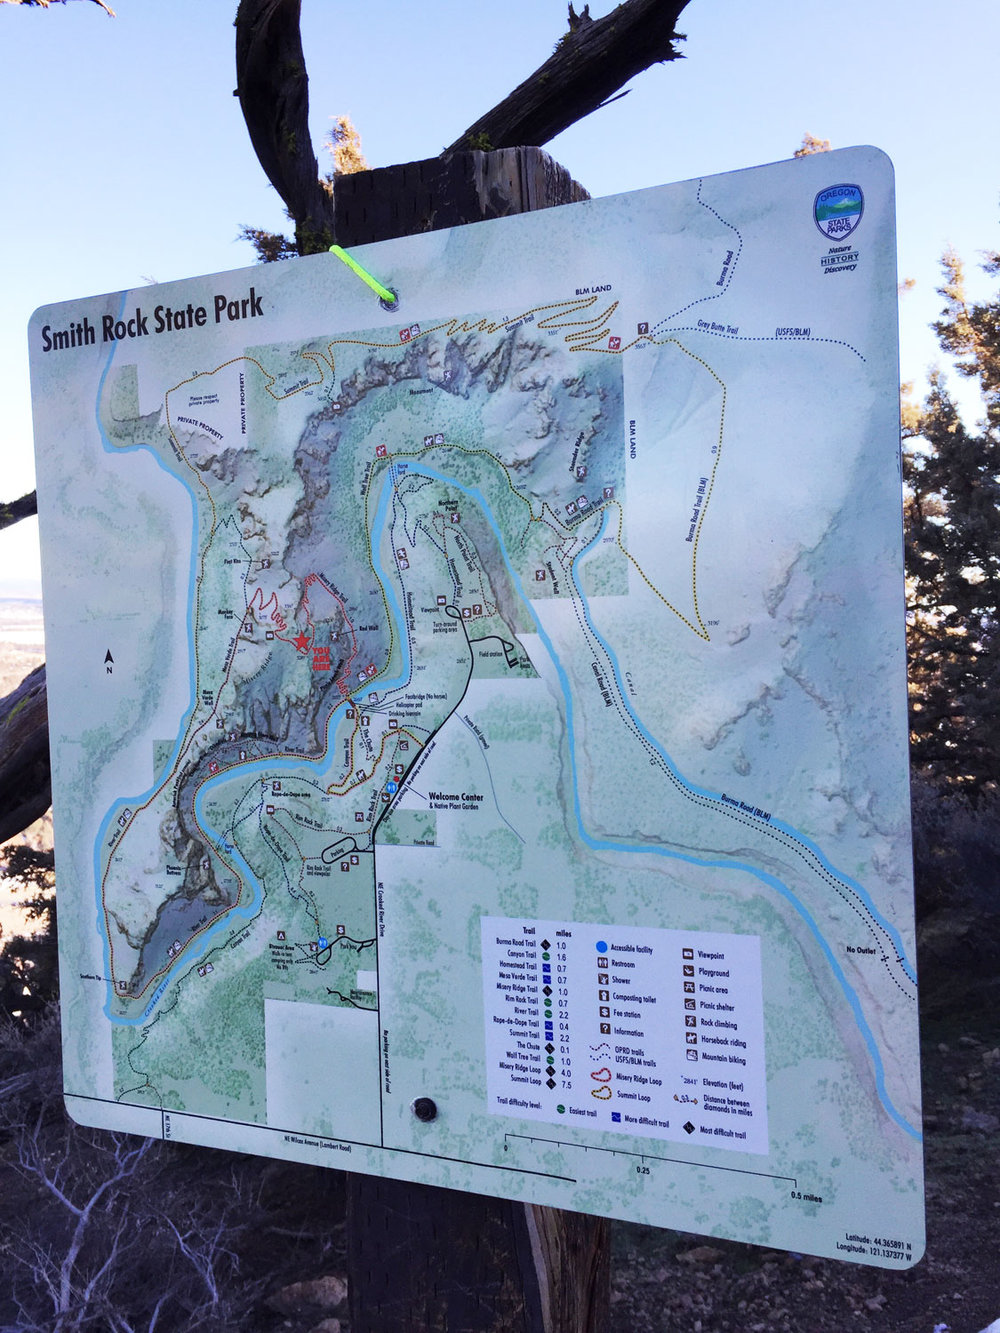 A map at the summit of the Misery Ridge Trail shows your position and marks the path to the rest of the ridge trail at Smith Rock State Park.